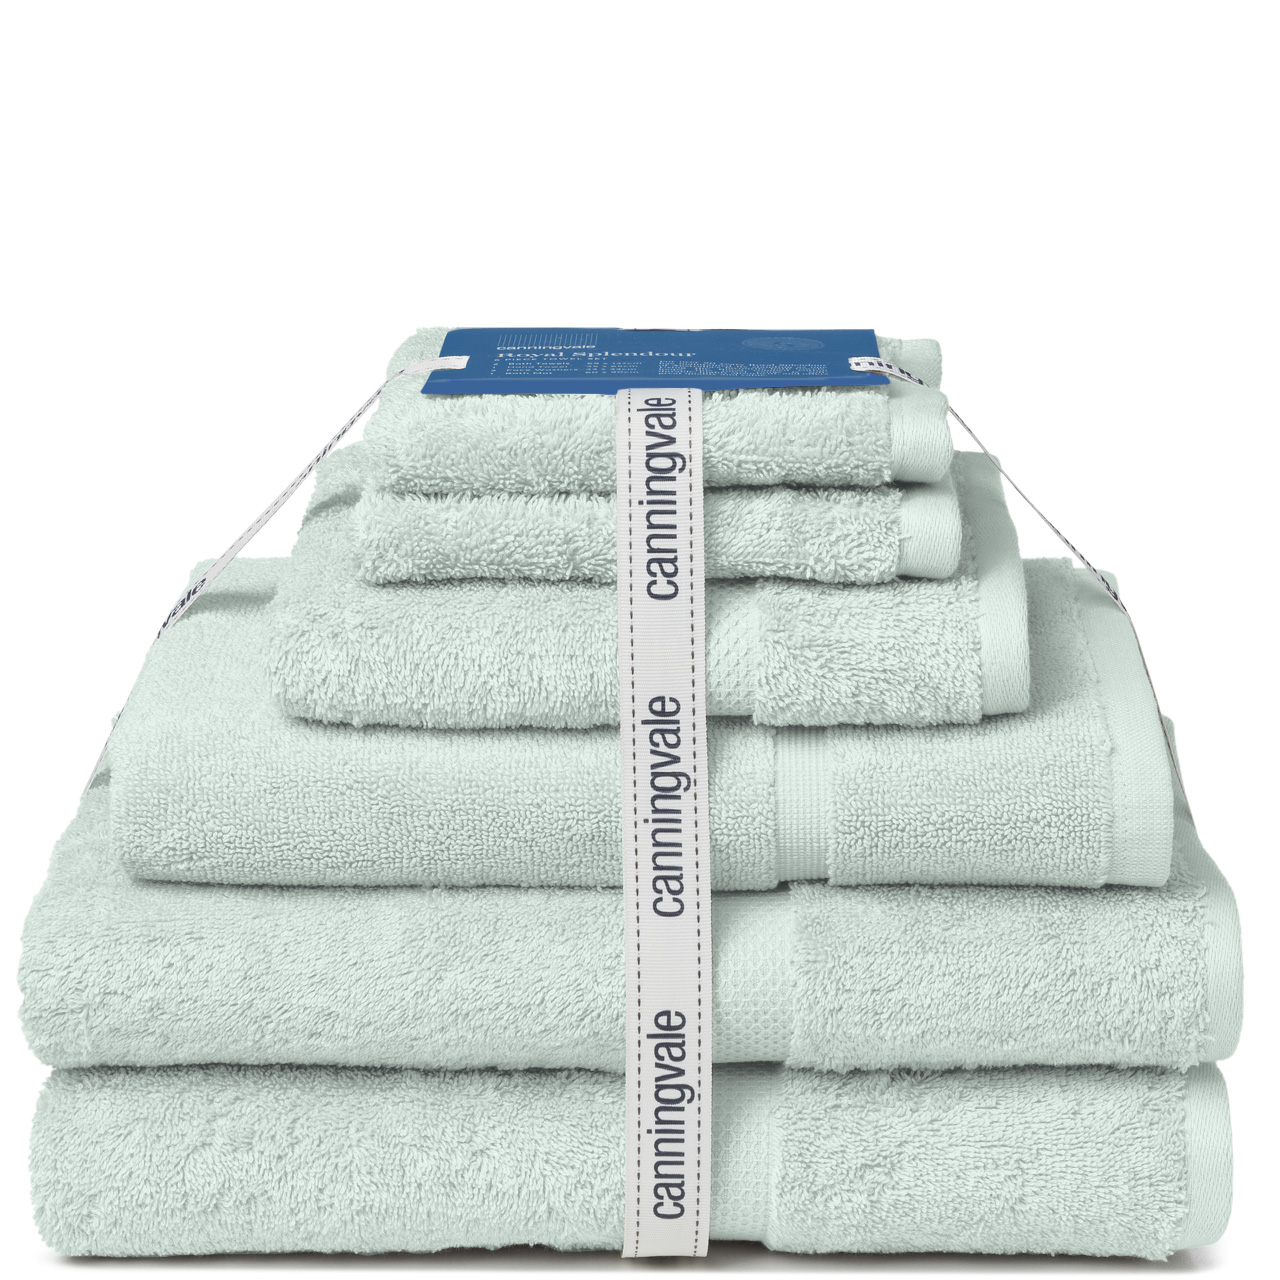 Canningvale-NEW-6-Piece-Royal-Splendour-100-Cotton-Bath-Hand-Face-Towel-Set